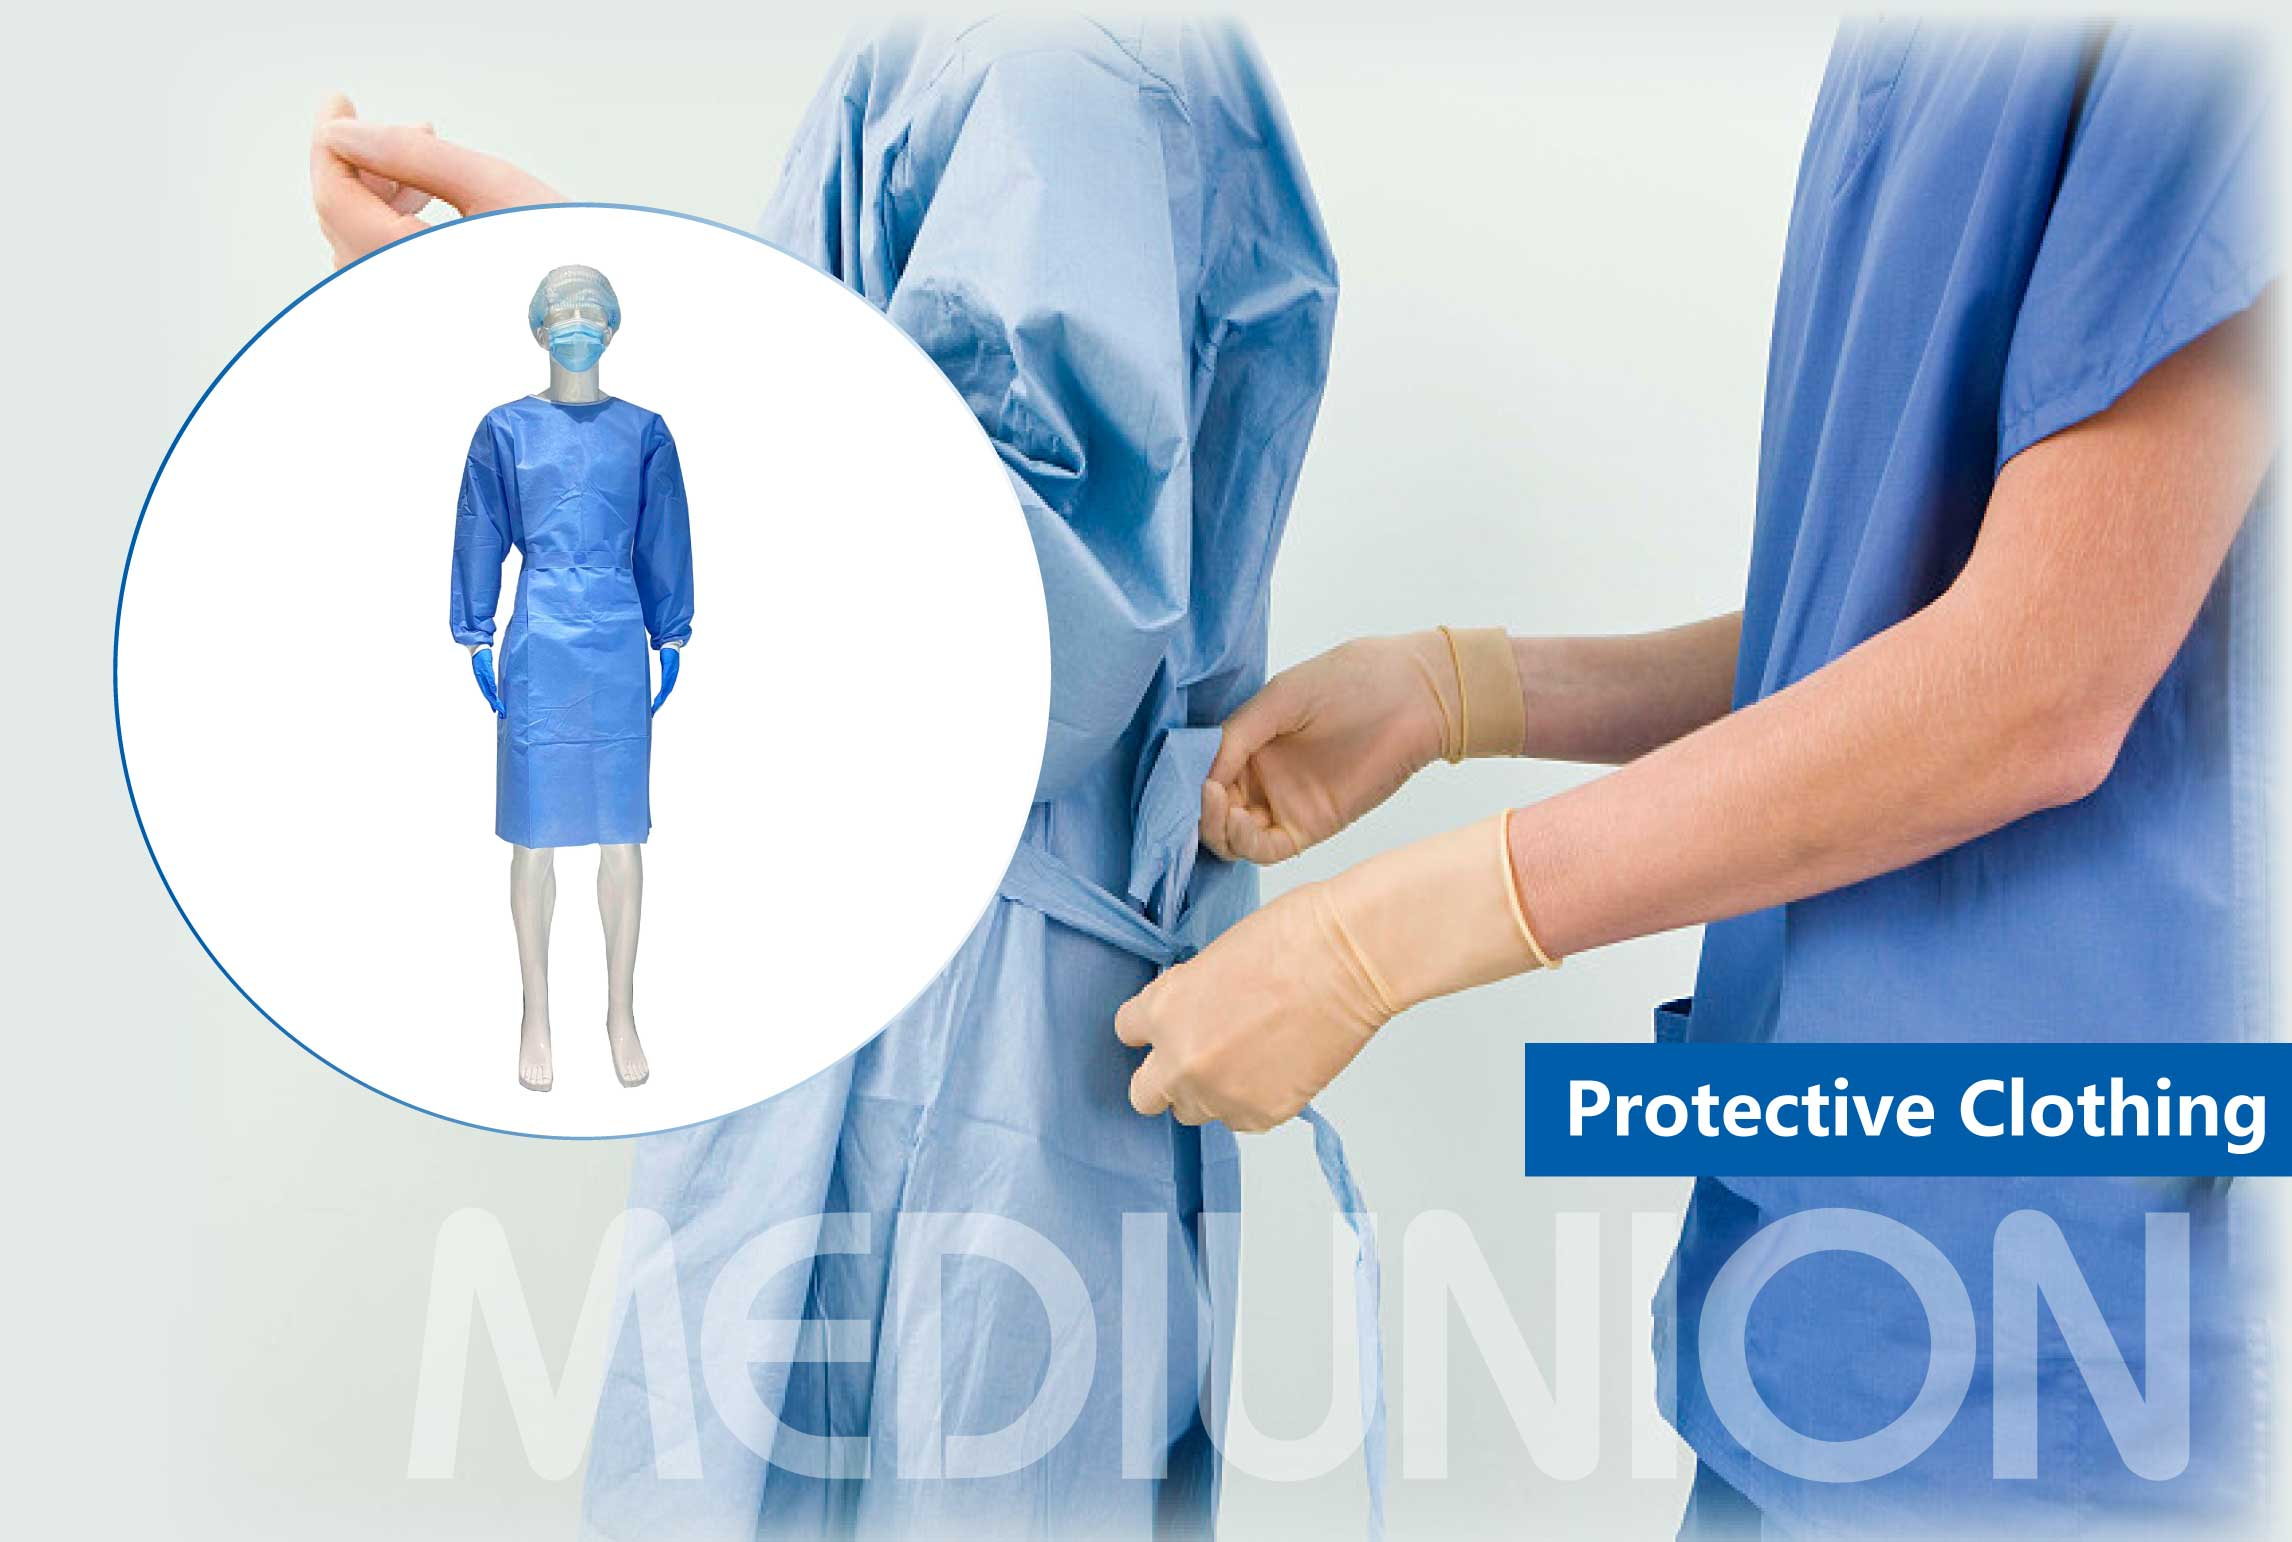 Protective Clothing